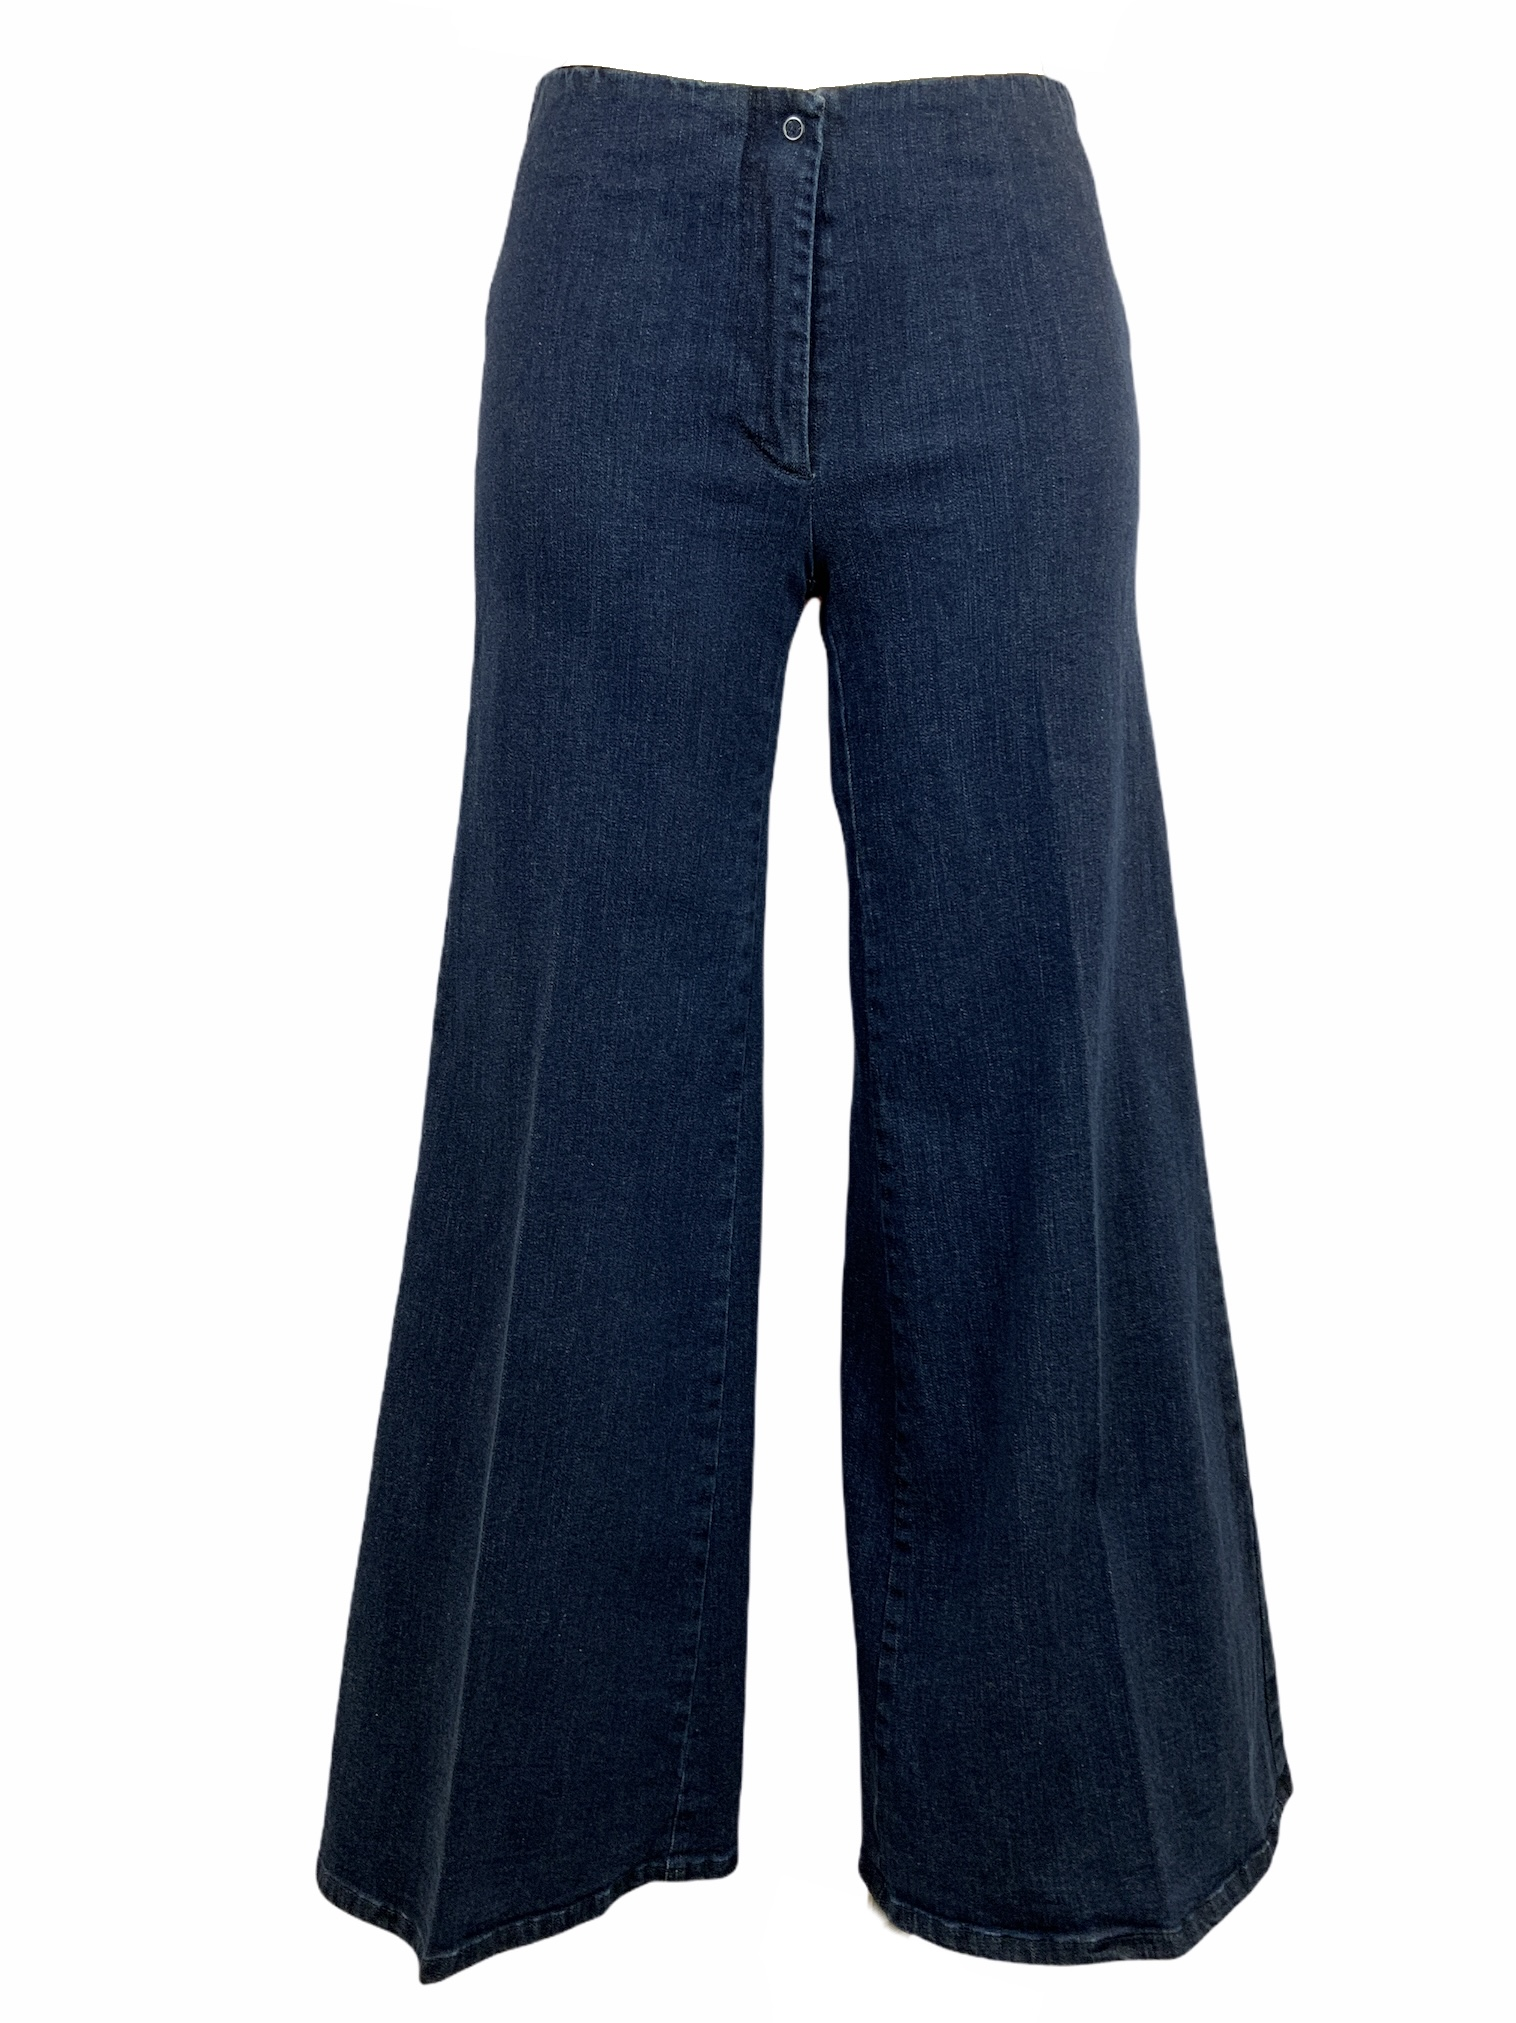 JEANS CROPPED PICCINOTTI